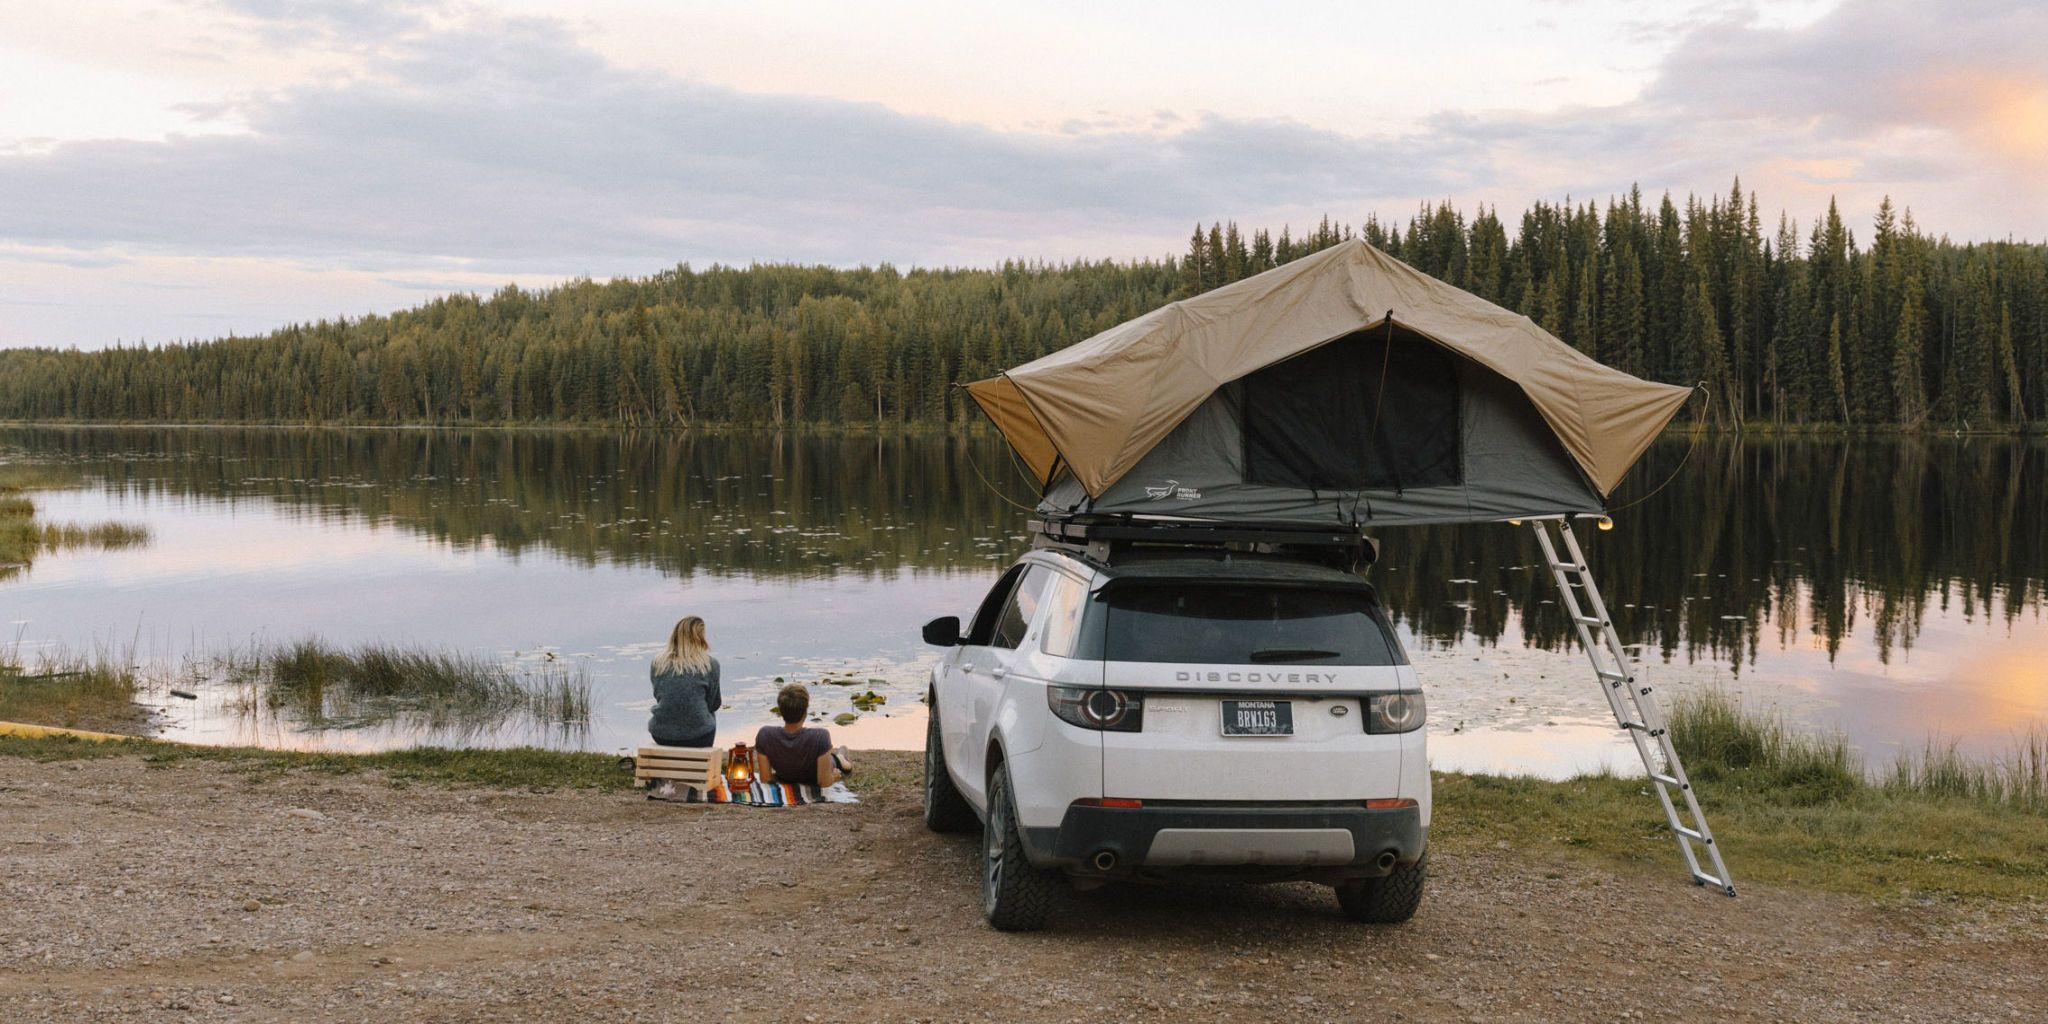 Roof top tents assemble in seconds which allow you more time around the c&fire and less time fiddling with tent poles. : rugged tents - memphite.com